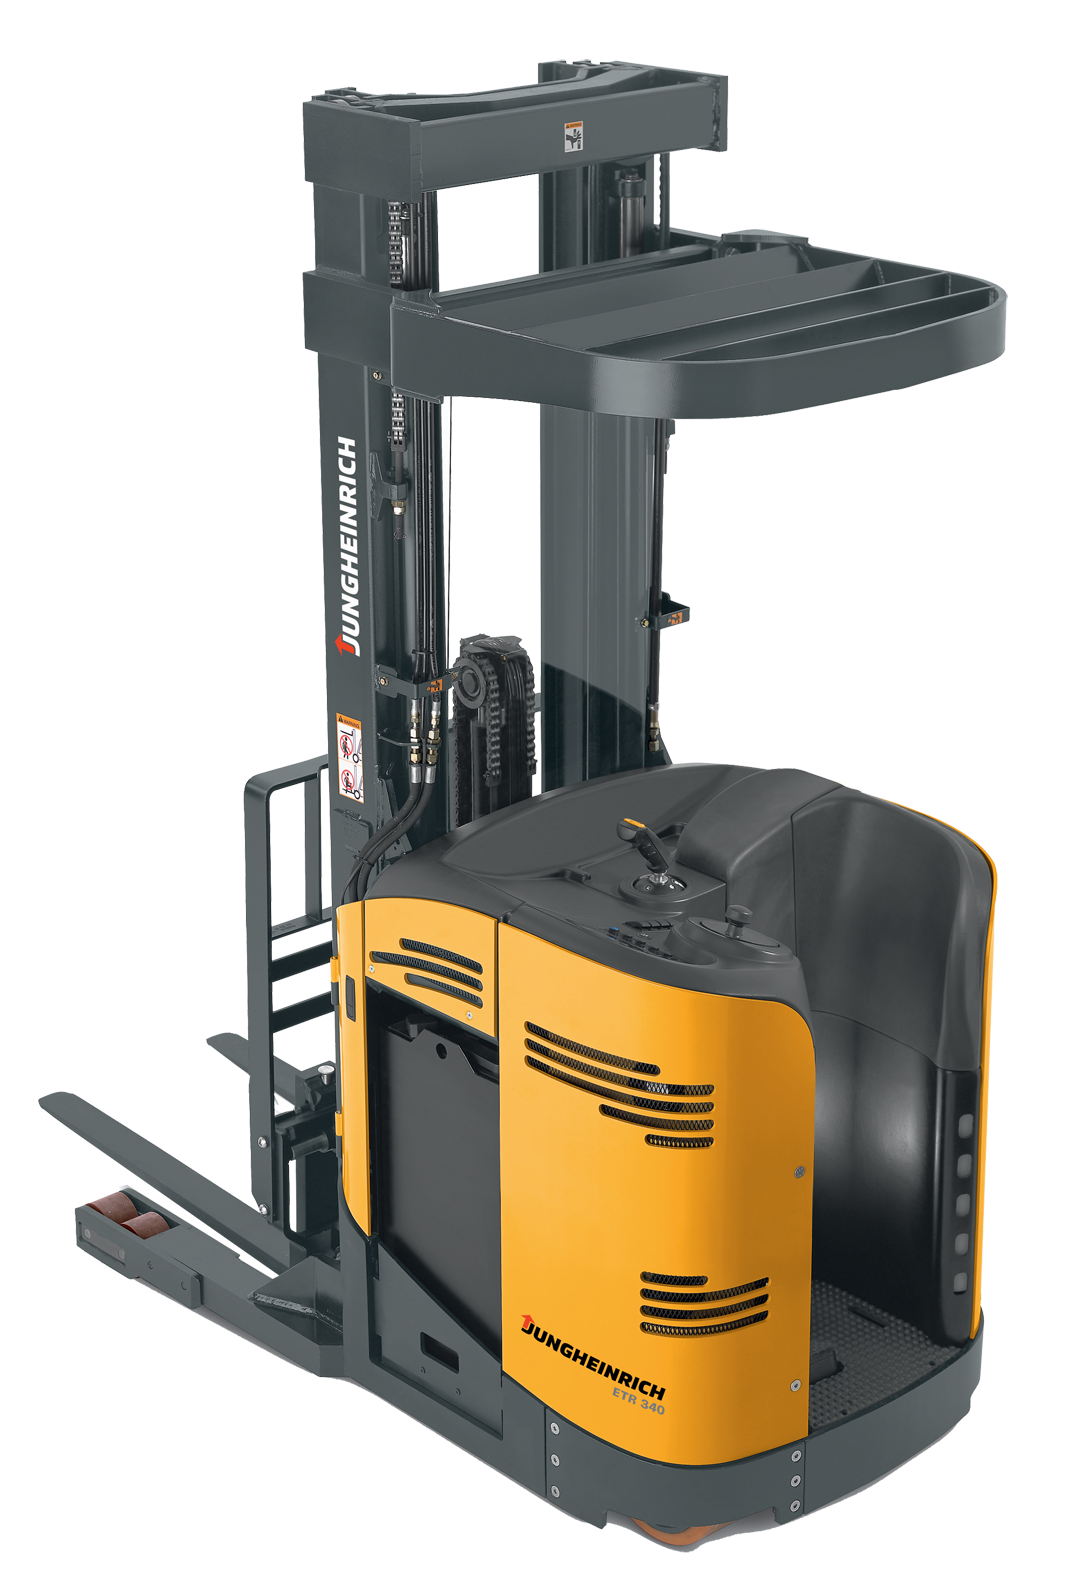 Narrow Aisle Forklift : Benefits of switching to reach trucks vs four wheel sit